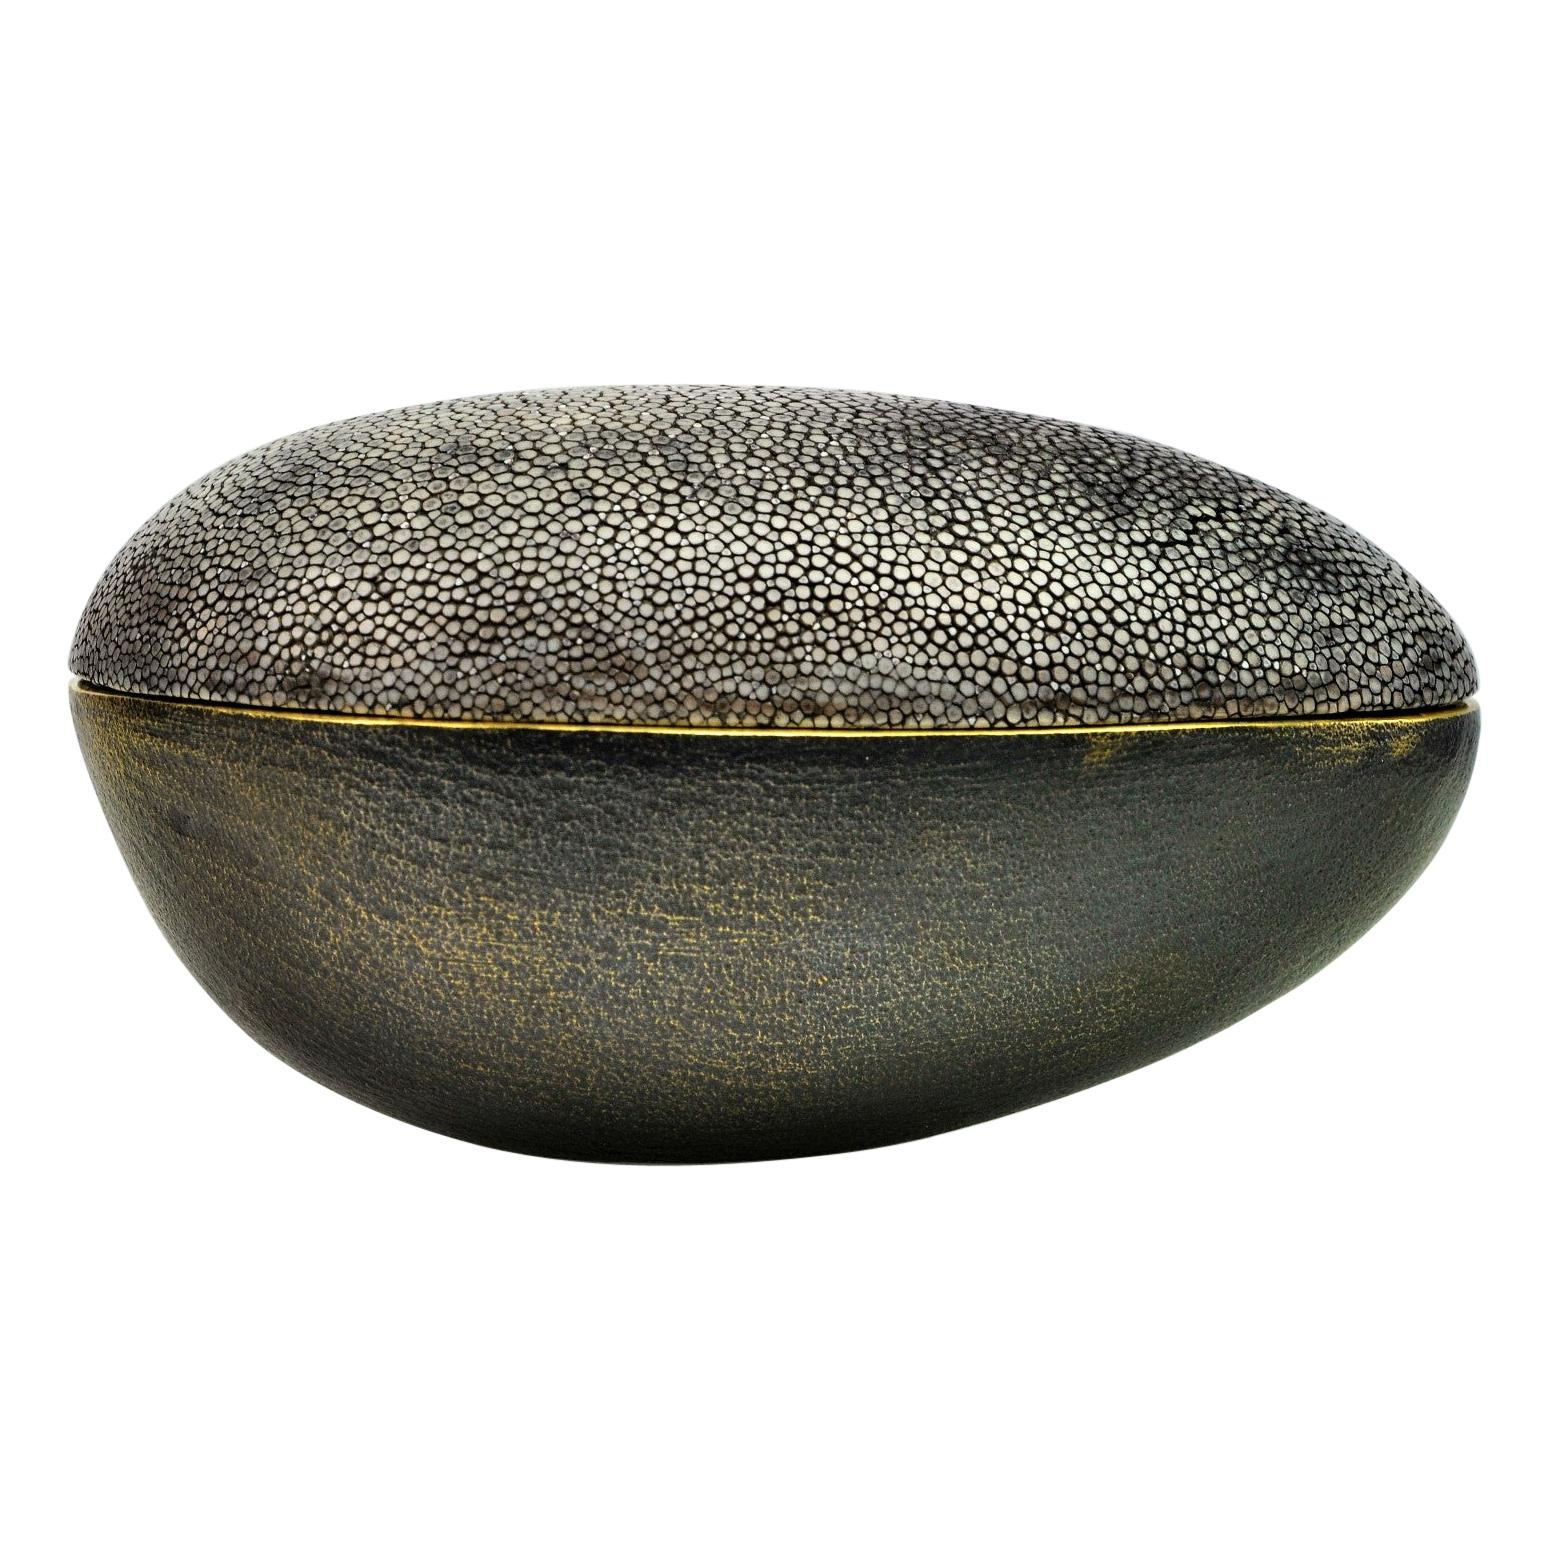 Brass Box with Shagreen Lid by Ginger Brown